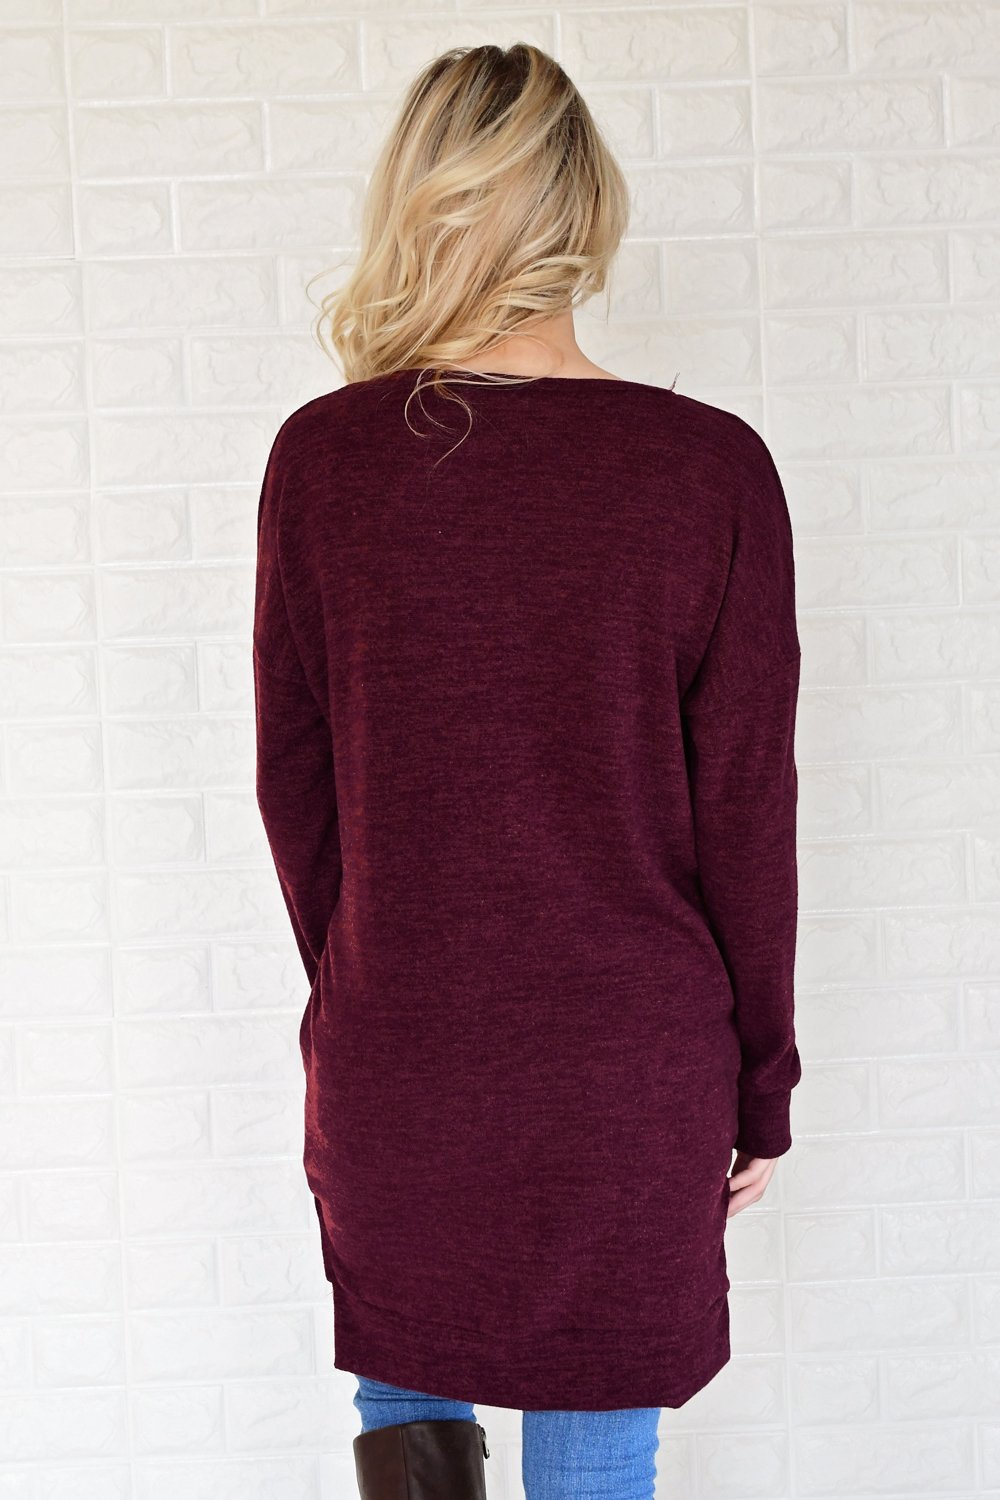 Burgundy V-Neck Tunic Top